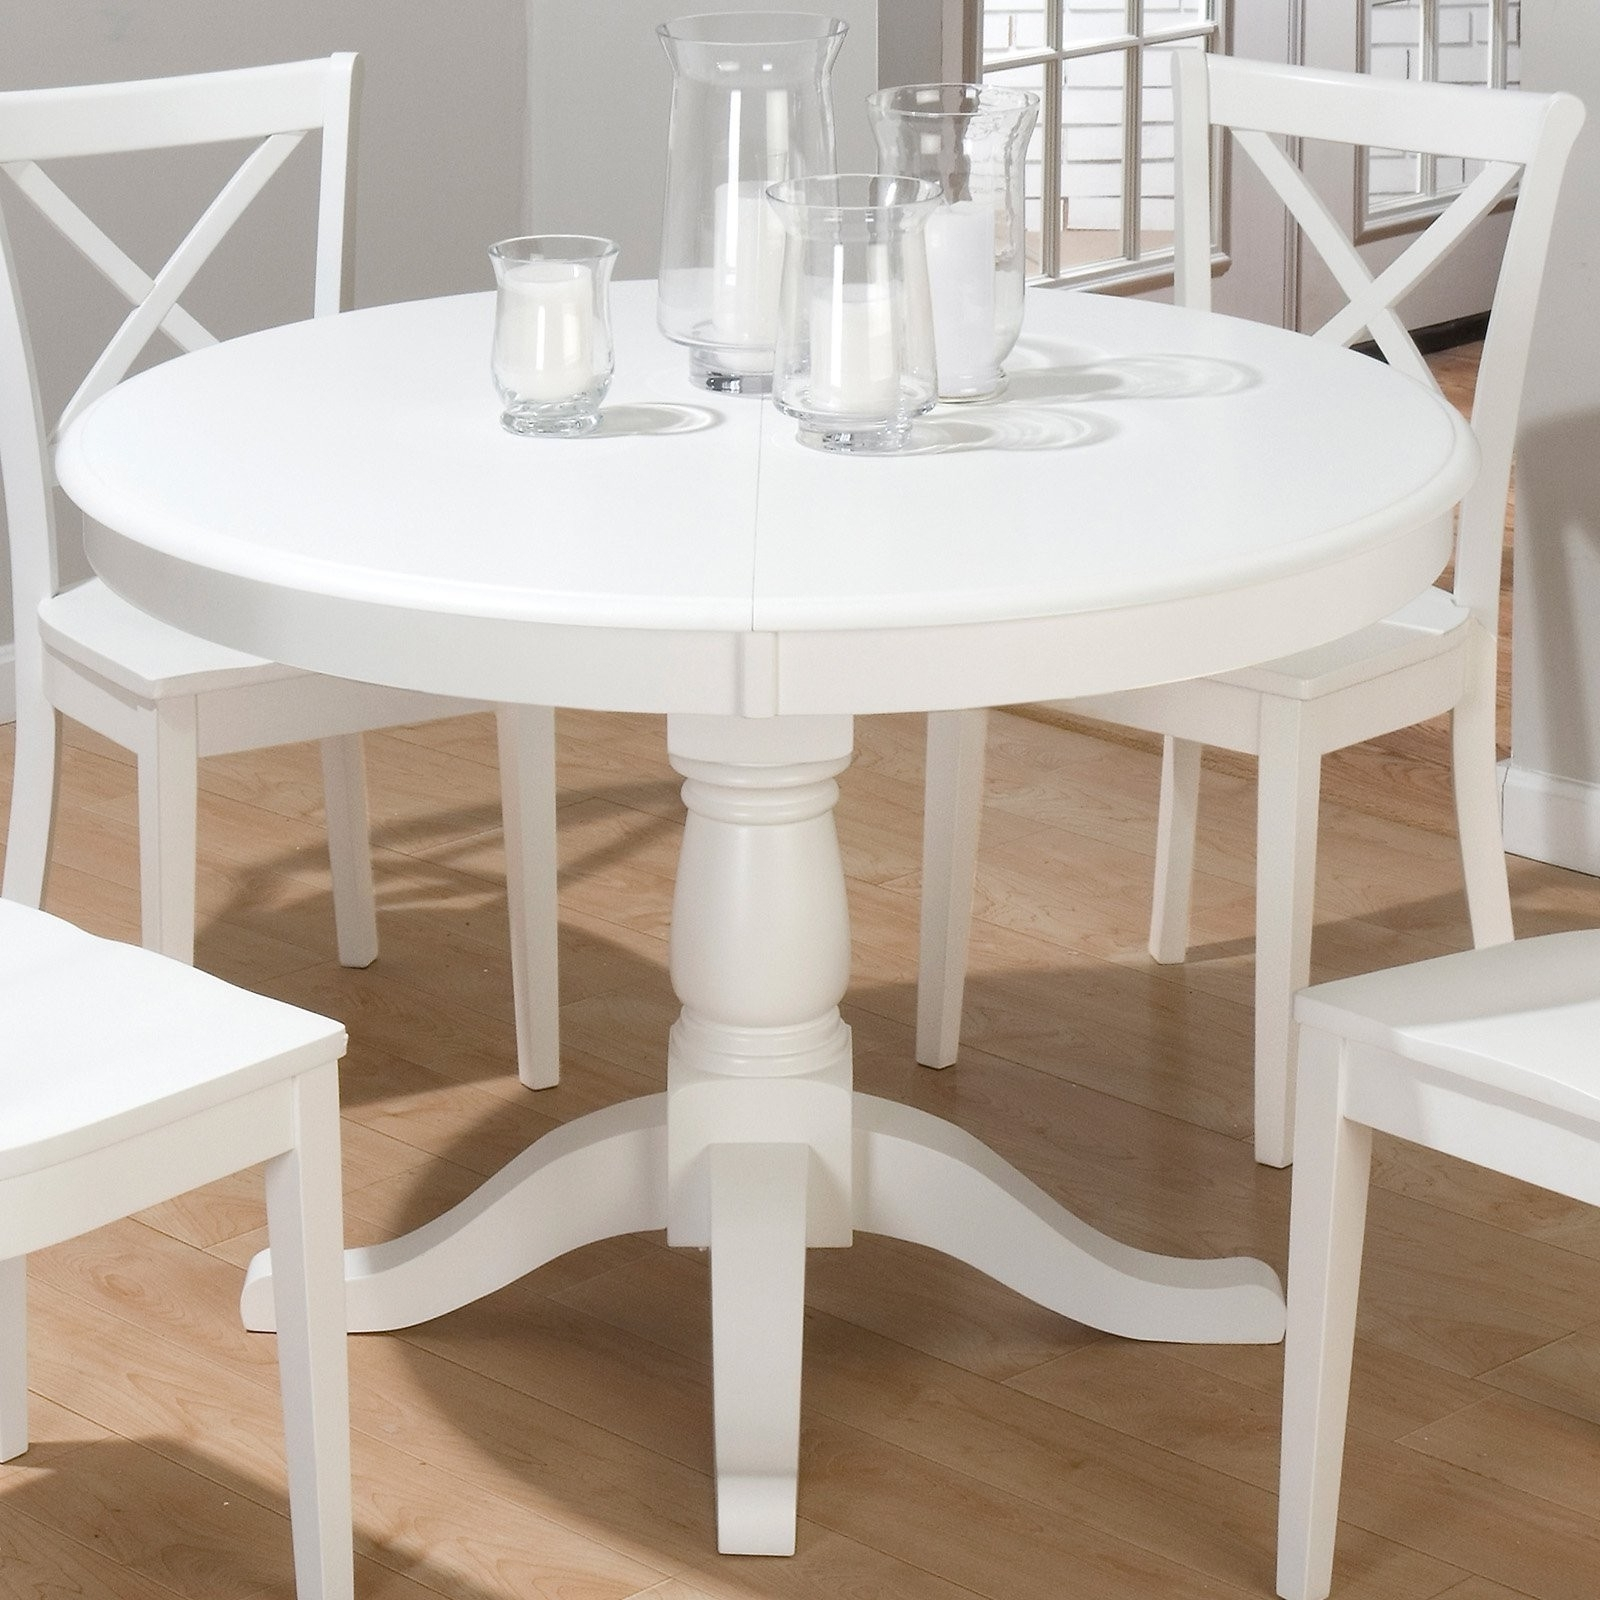 Well Known Extendable Dining Tables For Small Spaces Inspirational White Round Regarding Round White Extendable Dining Tables (View 7 of 25)